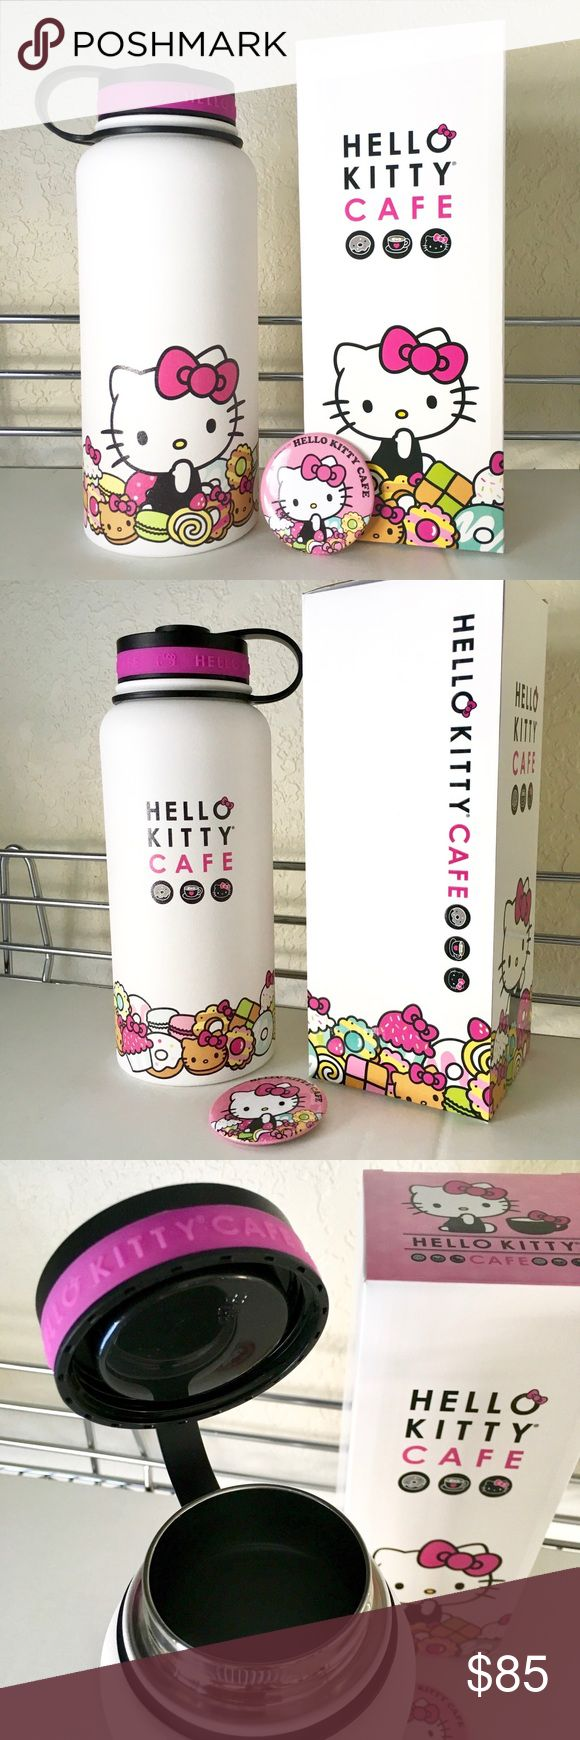 HELLO KITTY CAFE 32OZ BOTTLE + BUTTON Brand new limited edition 32oz thermal water bottle, plus a Hello Kitty Cafe button! Sold only at the Hello Kitty Cafe Trucks. Matte outter finish with a plastic twist off cap. Hard to find collectors item and sooo adorable! Hello Kitty Other